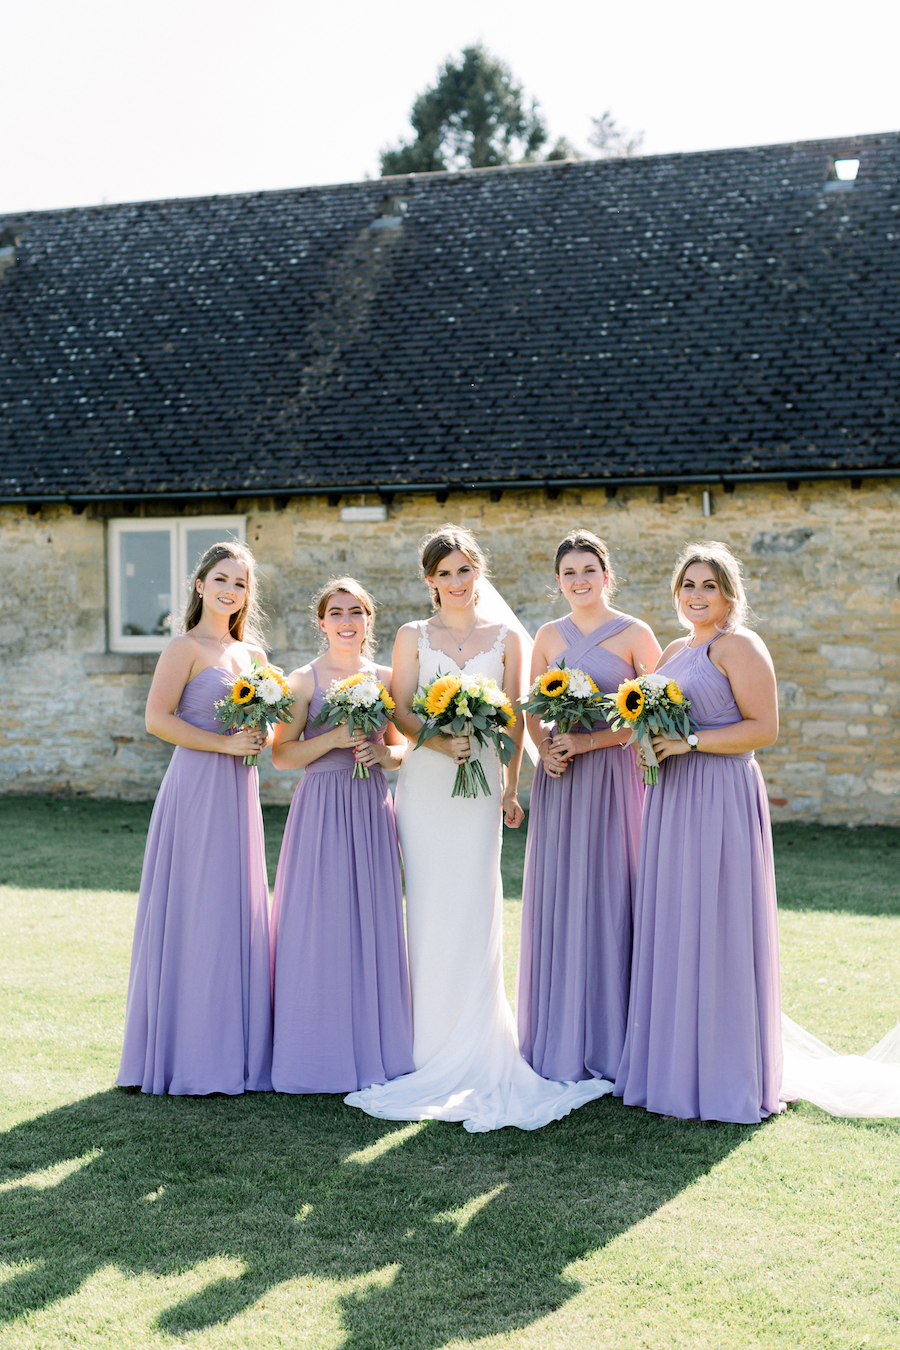 Louisa & Will's light and airy sunflower wedding at Lapstone Barn, with Hannah K Photography (17)